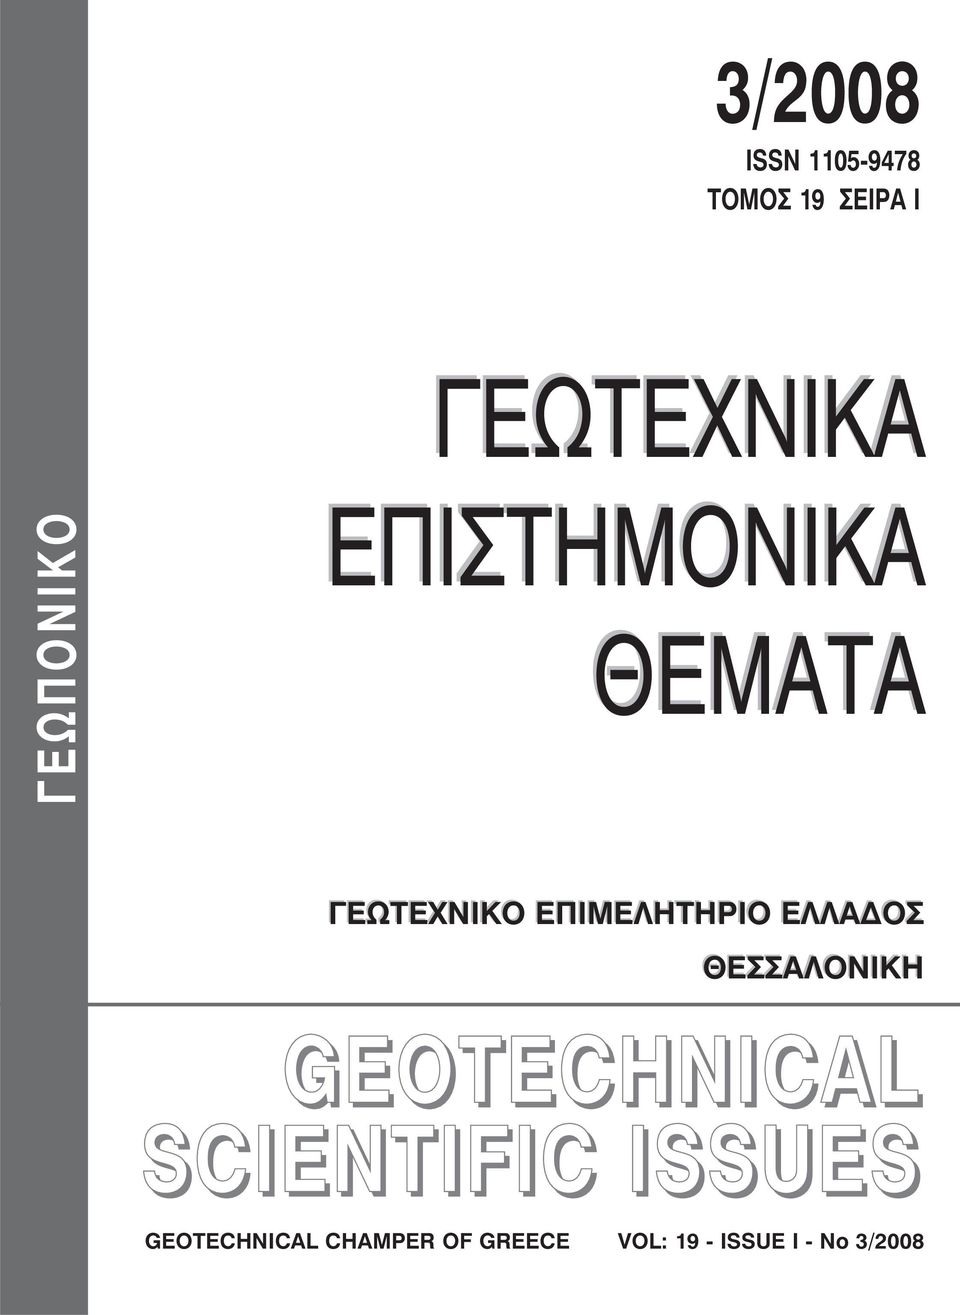 GEOTECHNICAL SCIENTIFIC ISSUES